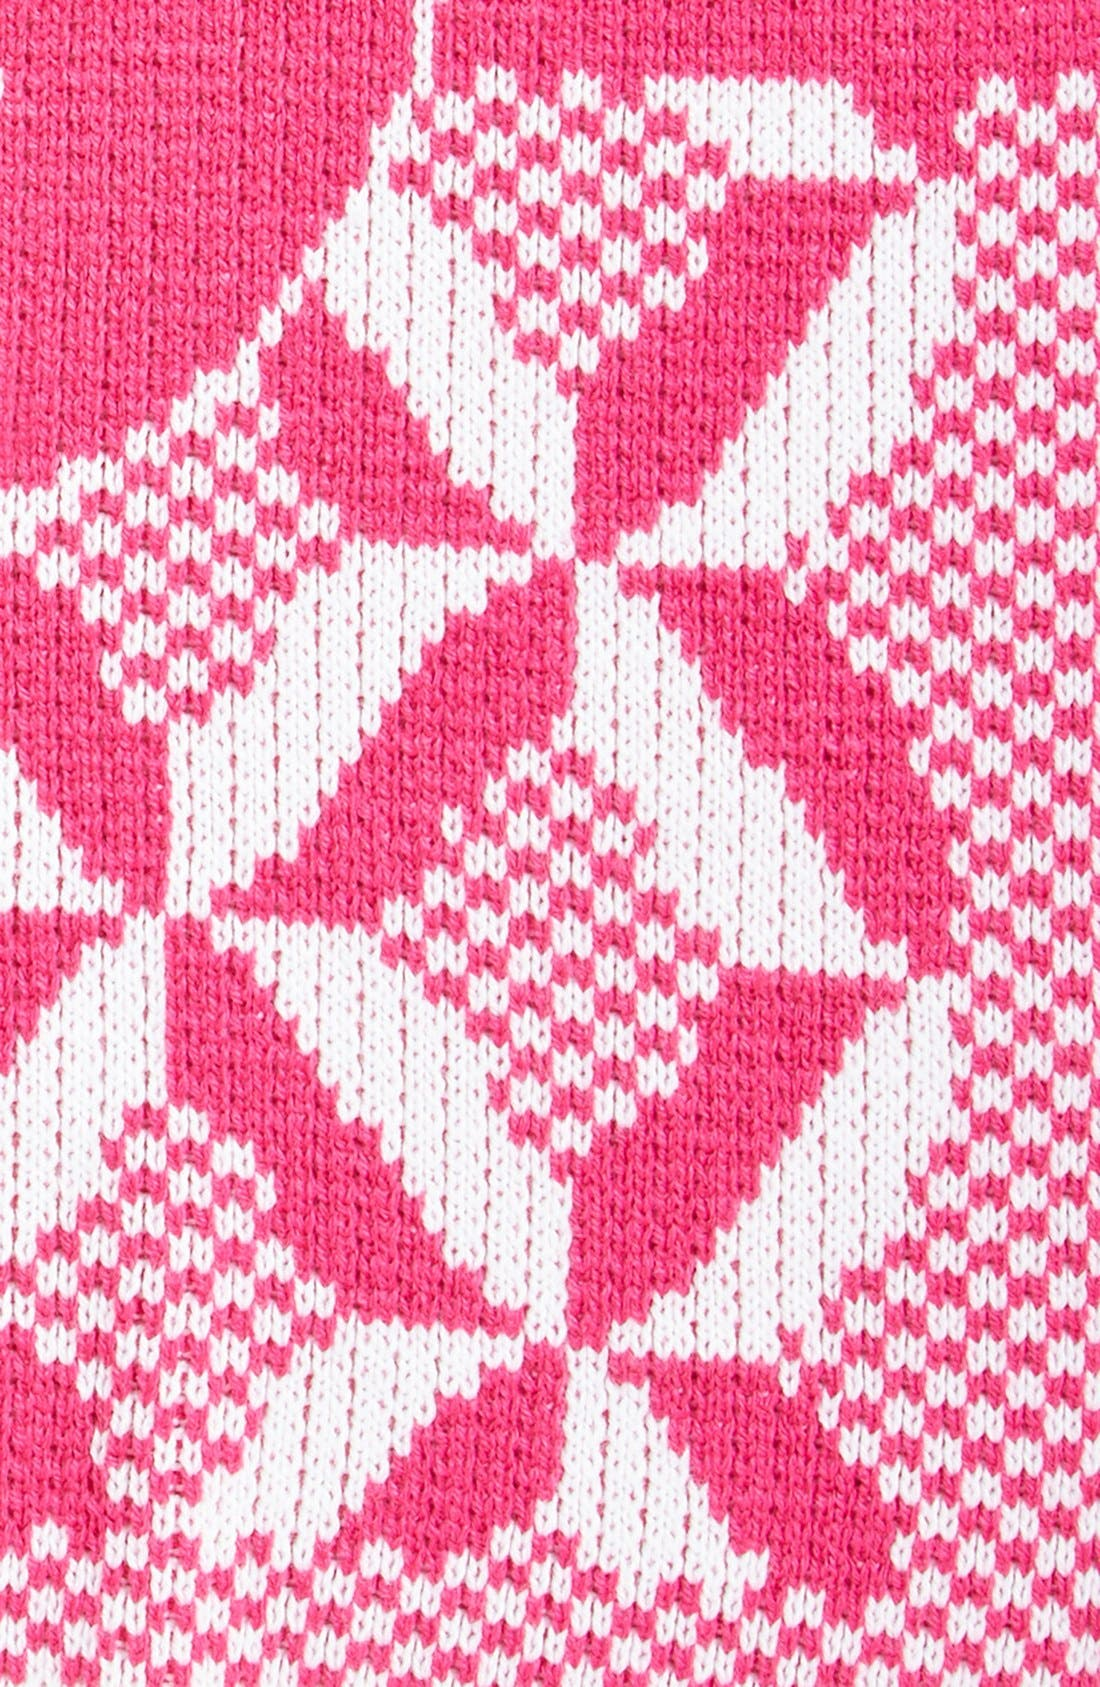 'Puzzle' Personalized Blanket,                             Alternate thumbnail 2, color,                             650